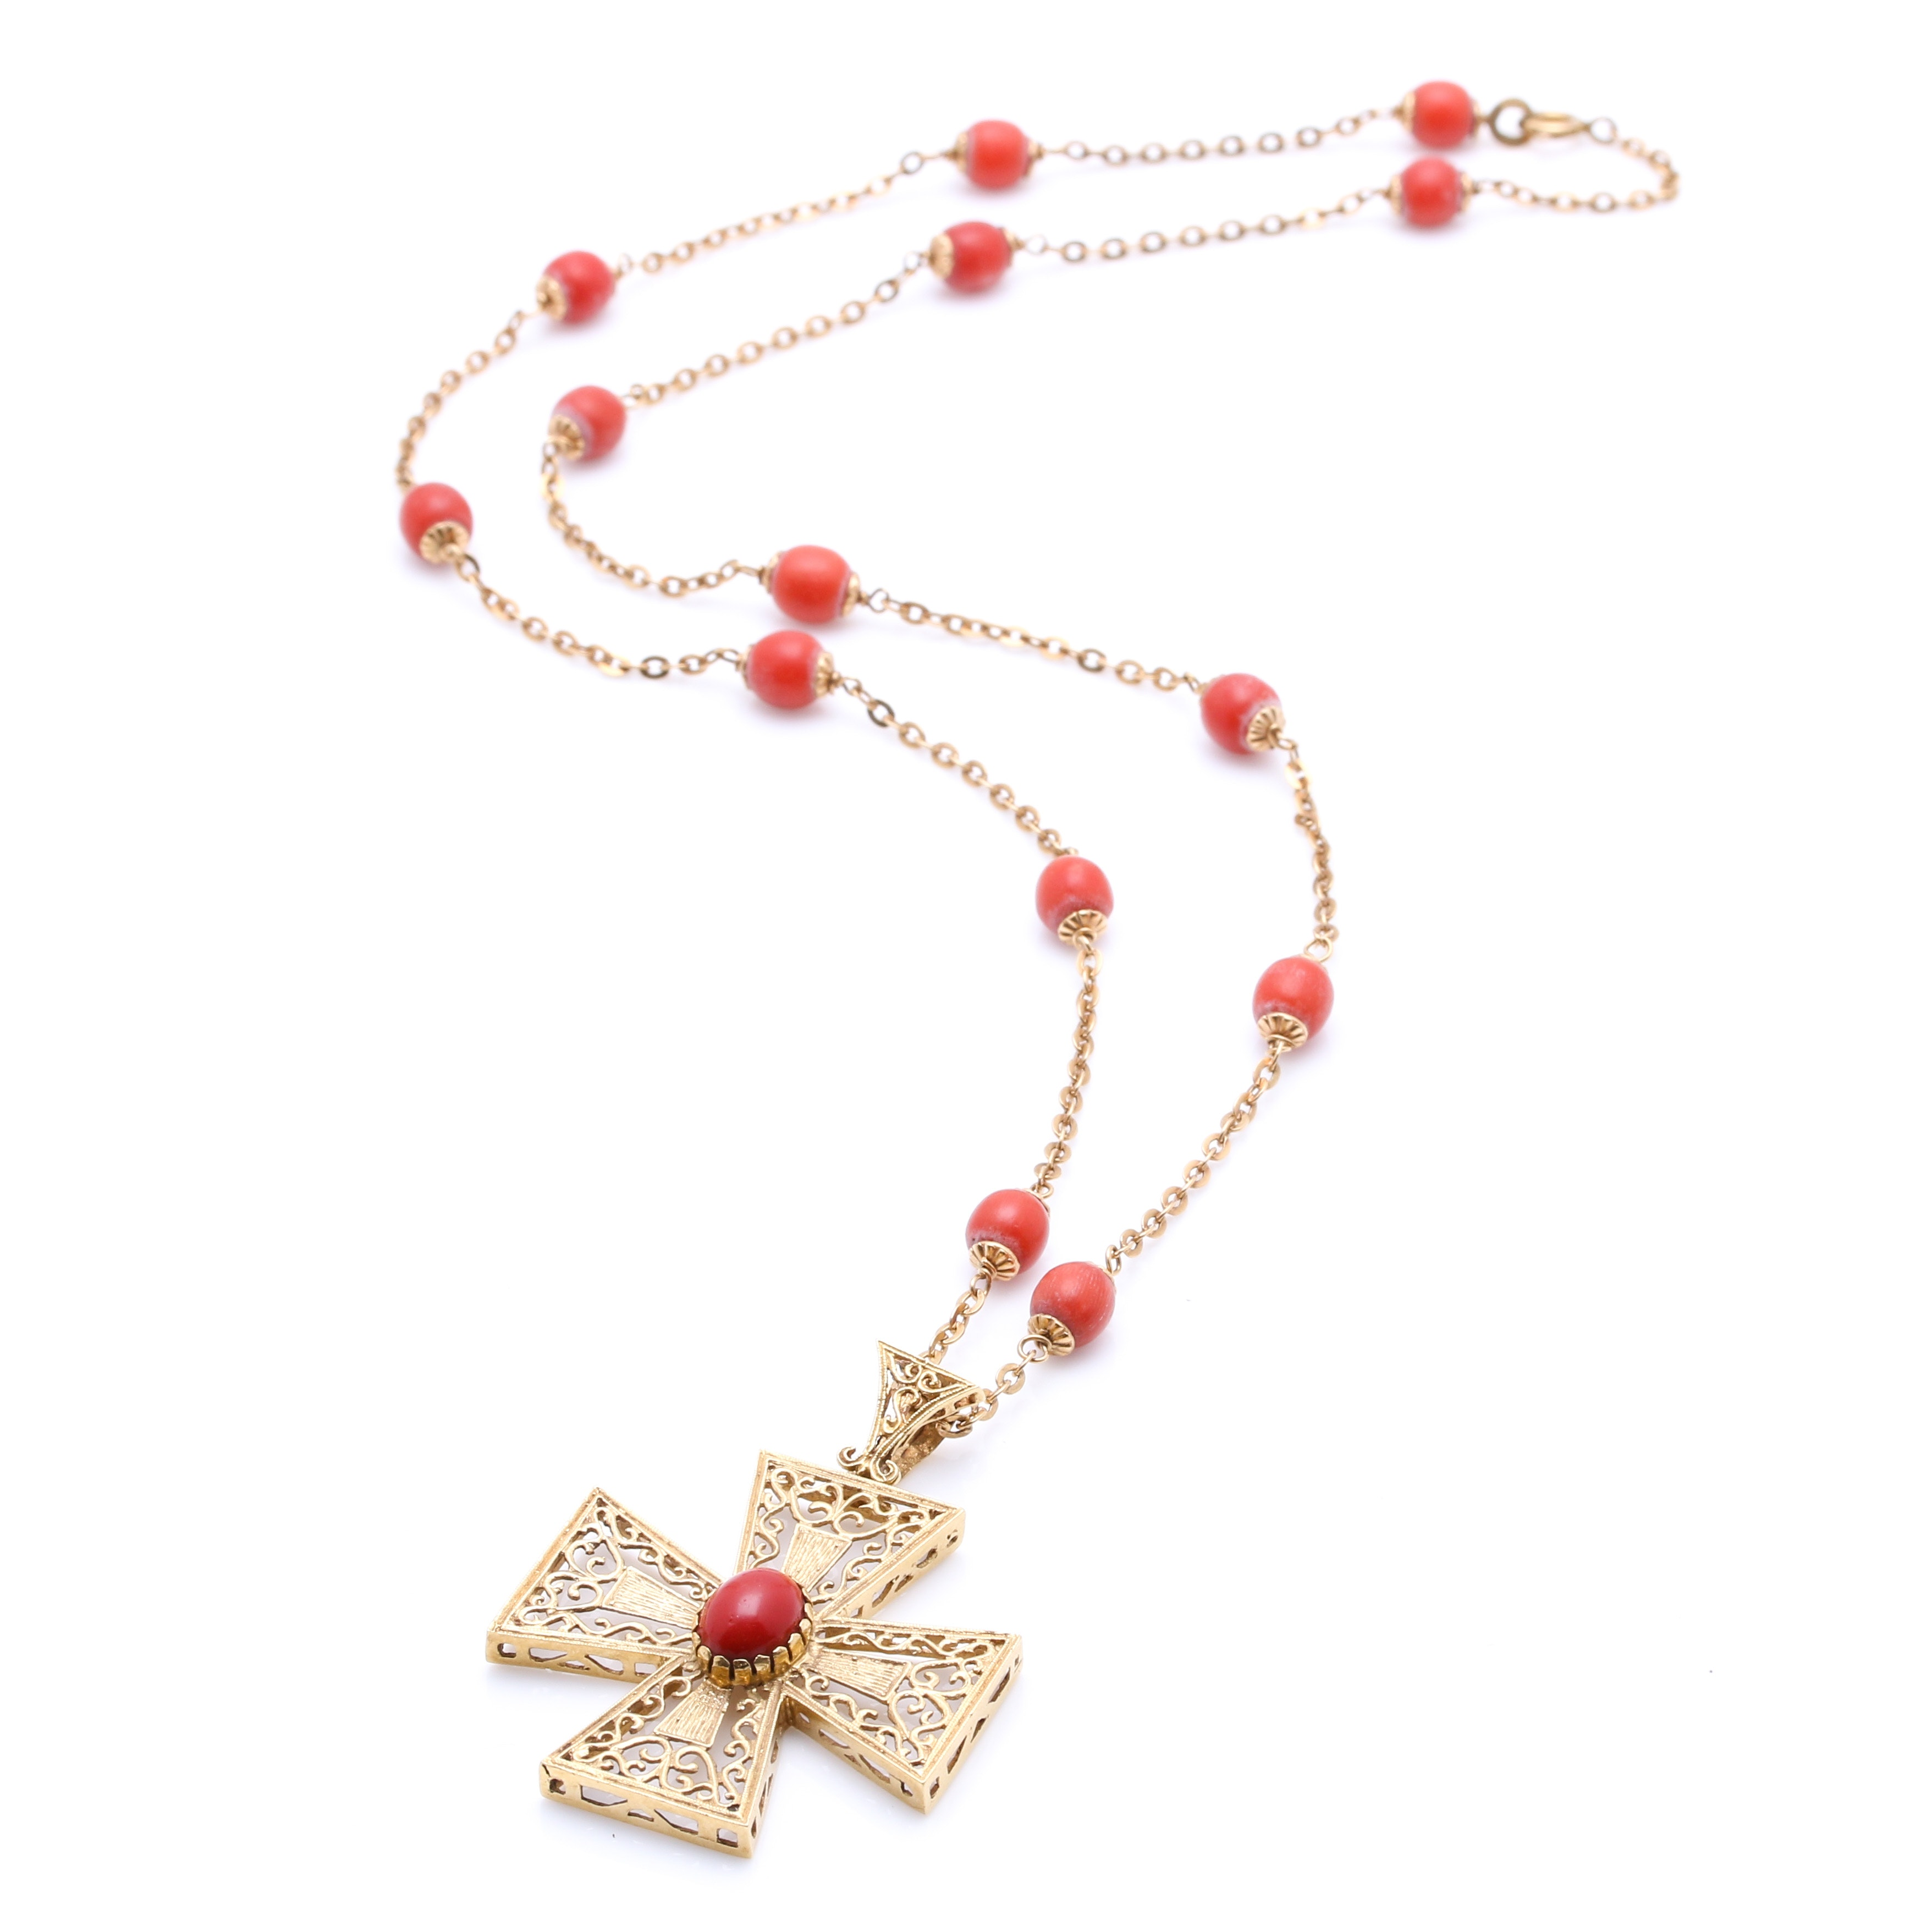 18K Yellow Gold Coral Bead Necklace with a Filigree Cruciform Pendant